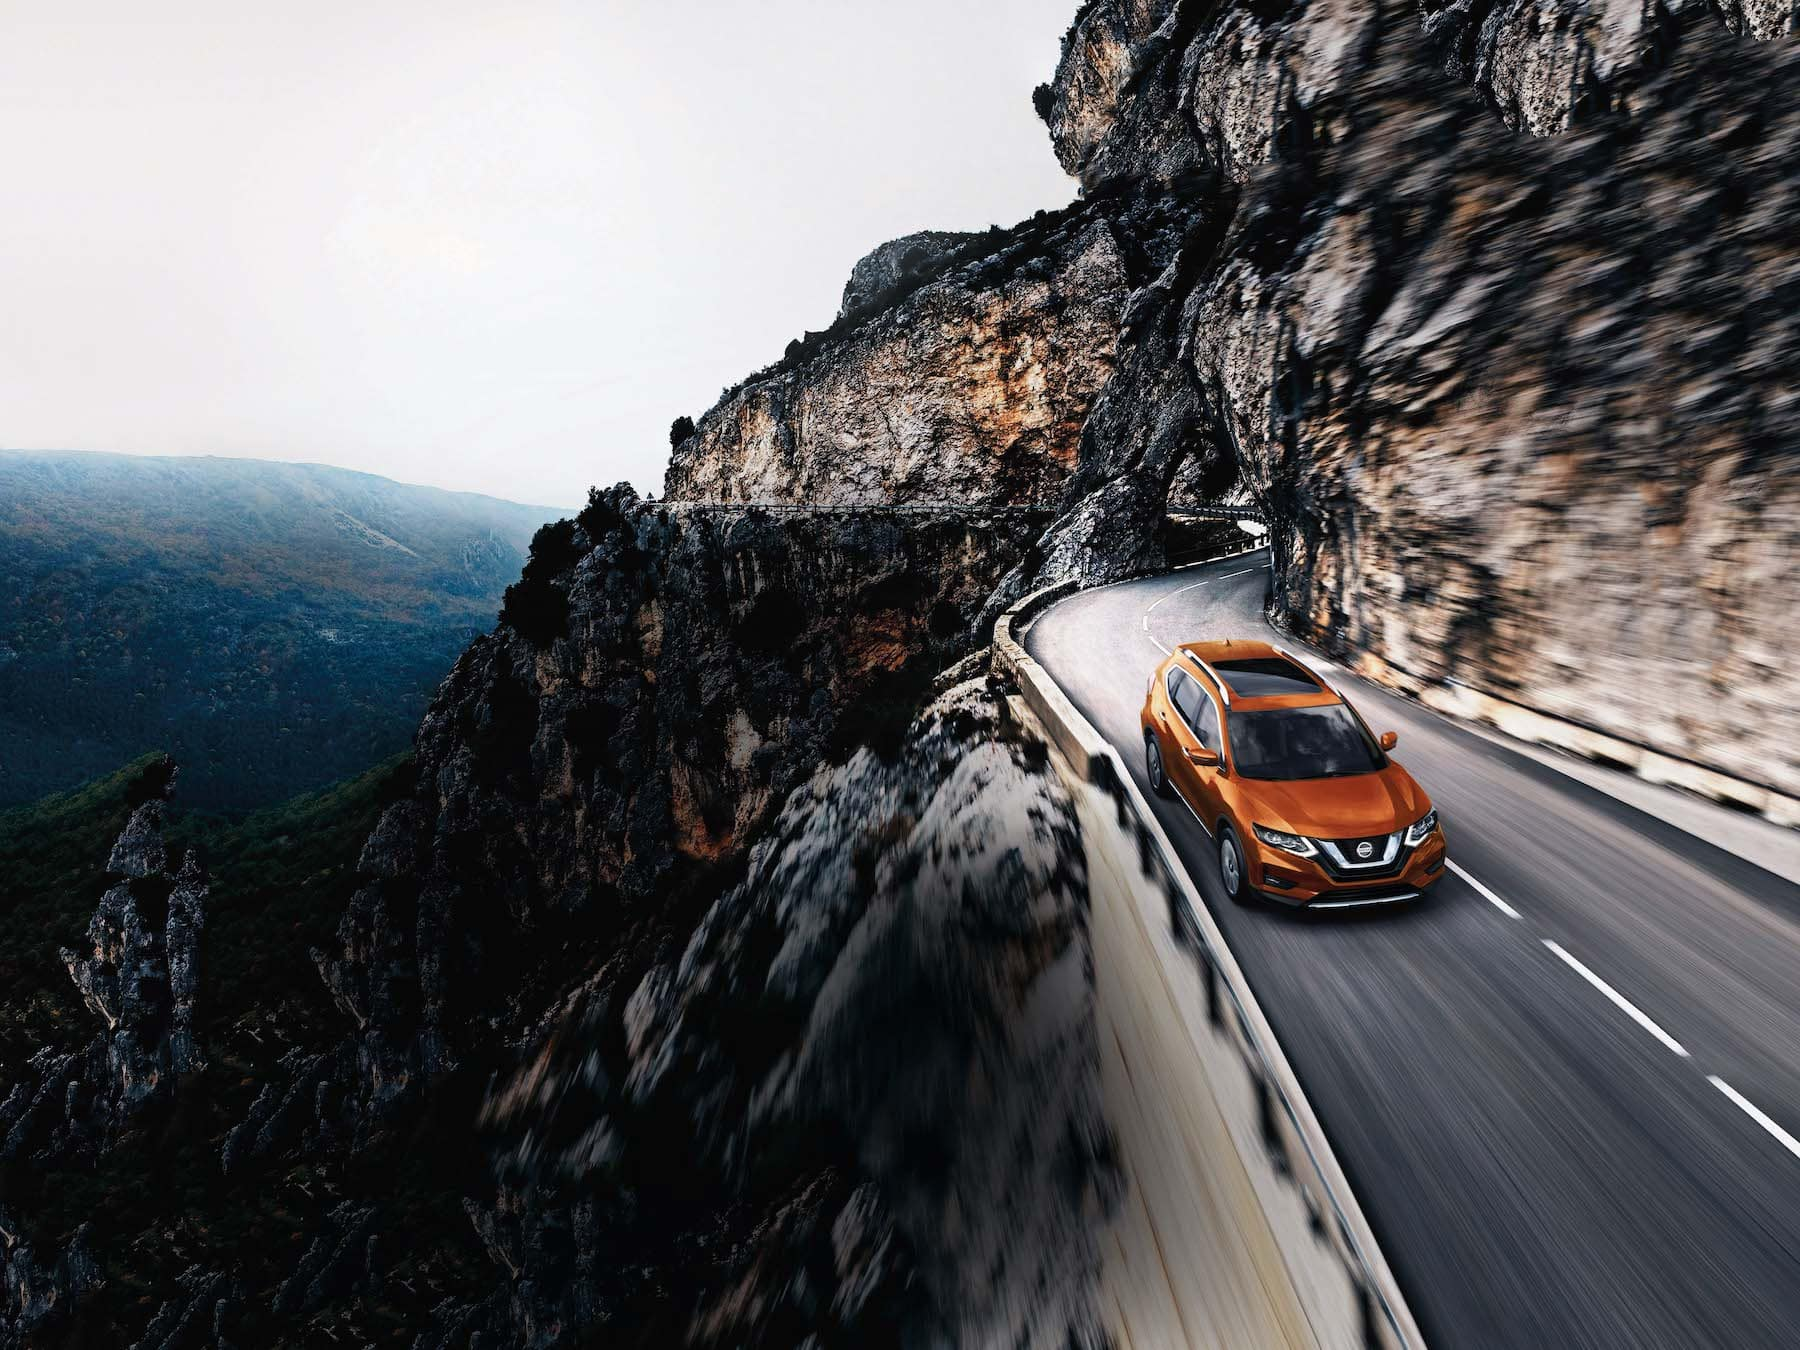 The 2020 Rogue model features at Hanover Nissan in Hanover | Orange 2020 rogue driving up the hill